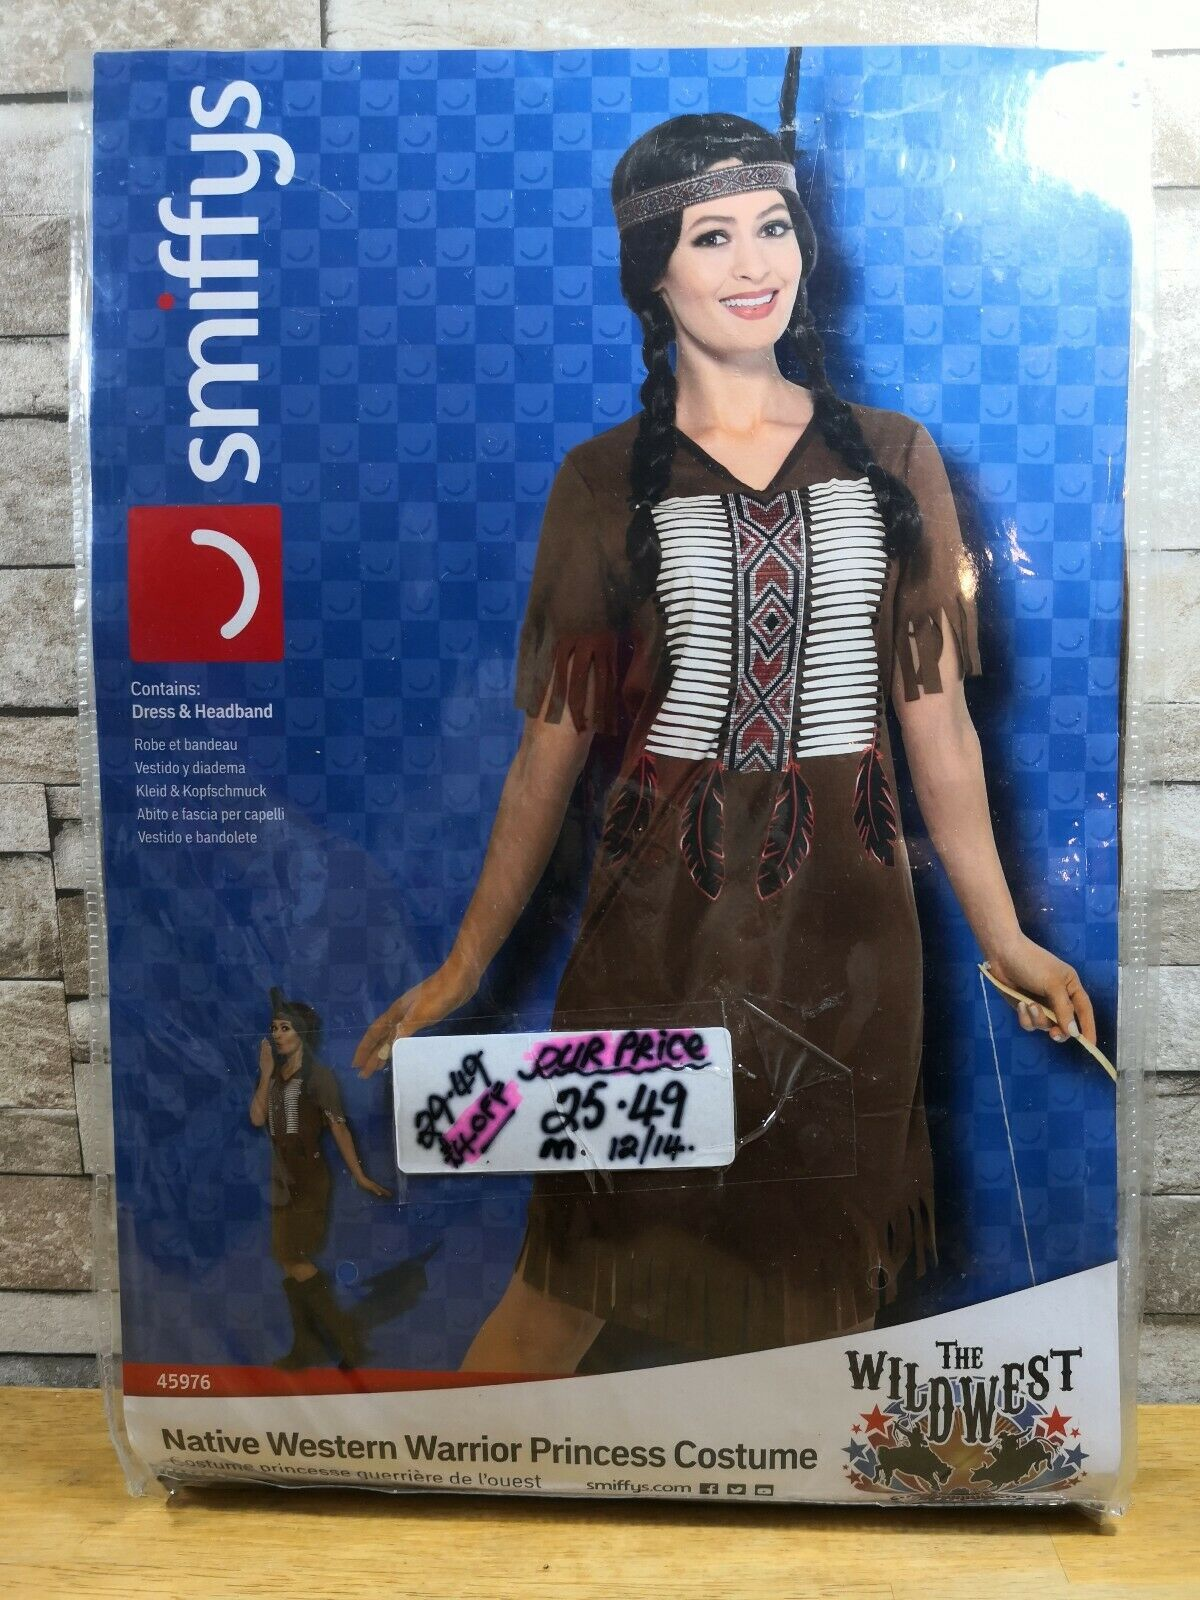 SMIFFYS NATIVE WESTERN WARRIOR PRINCESS INDIAN COSTUME SIZE 12 - 14 BRAND NEW IN